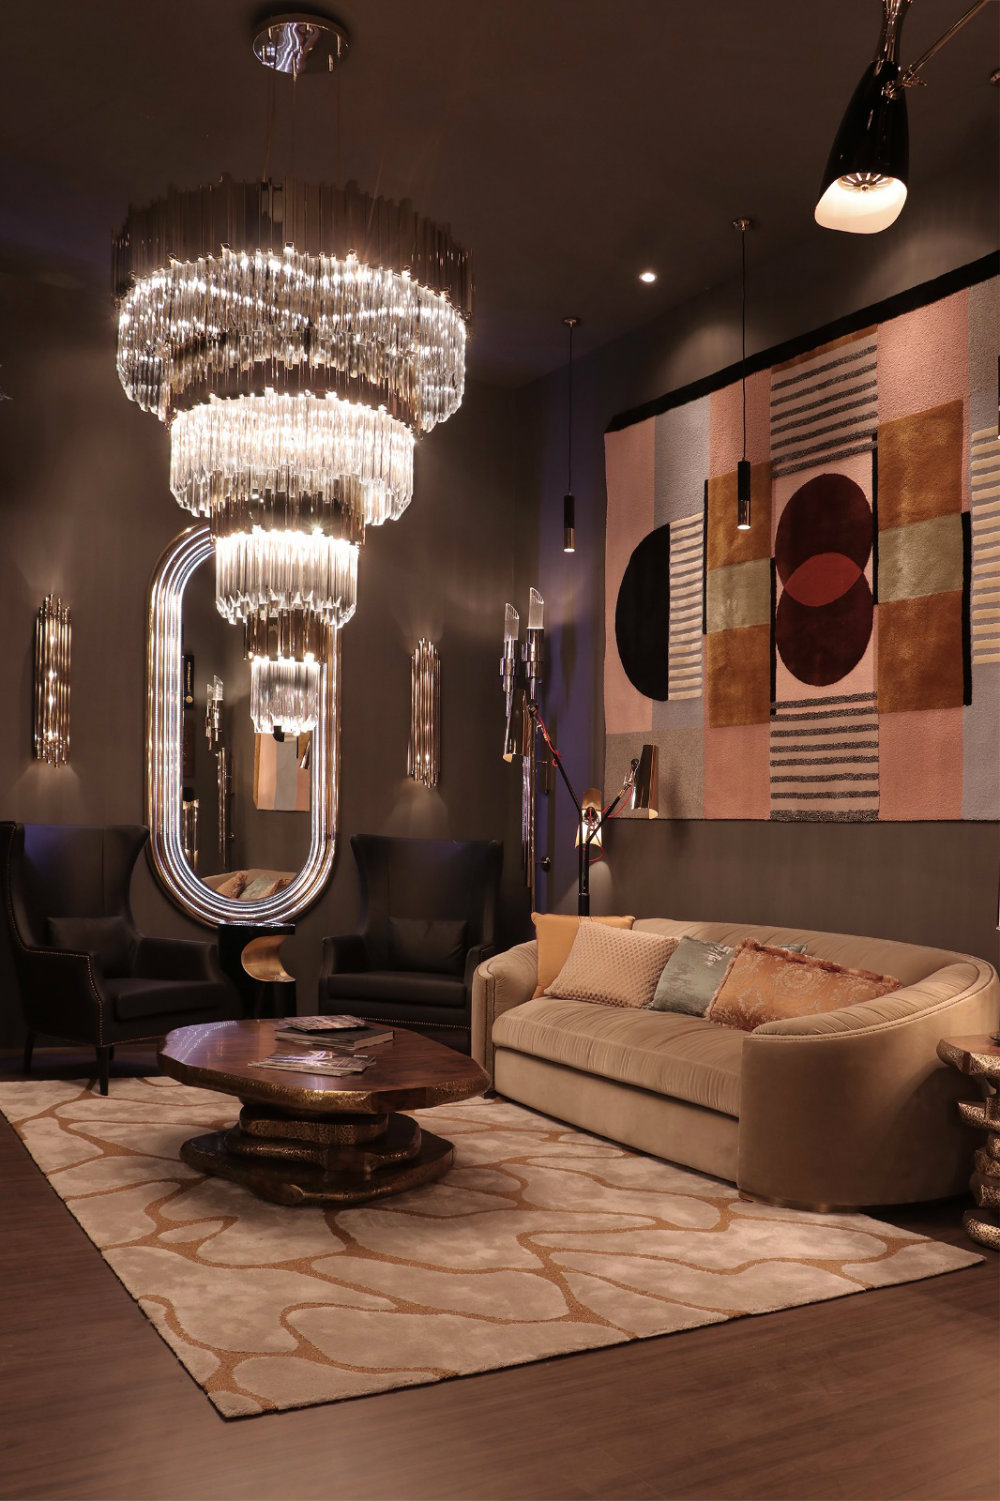 LUXXU Luxury Designs at Maison et Objet 2018 Viceroy Luxury hotels: Discovering Viceroy Hotel NYC LUXXU Luxury Designs at Maison et Objet 2018 01 Viceroy Luxury hotels: Discovering Viceroy Hotel NYC LUXXU Luxury Designs at Maison et Objet 2018 01